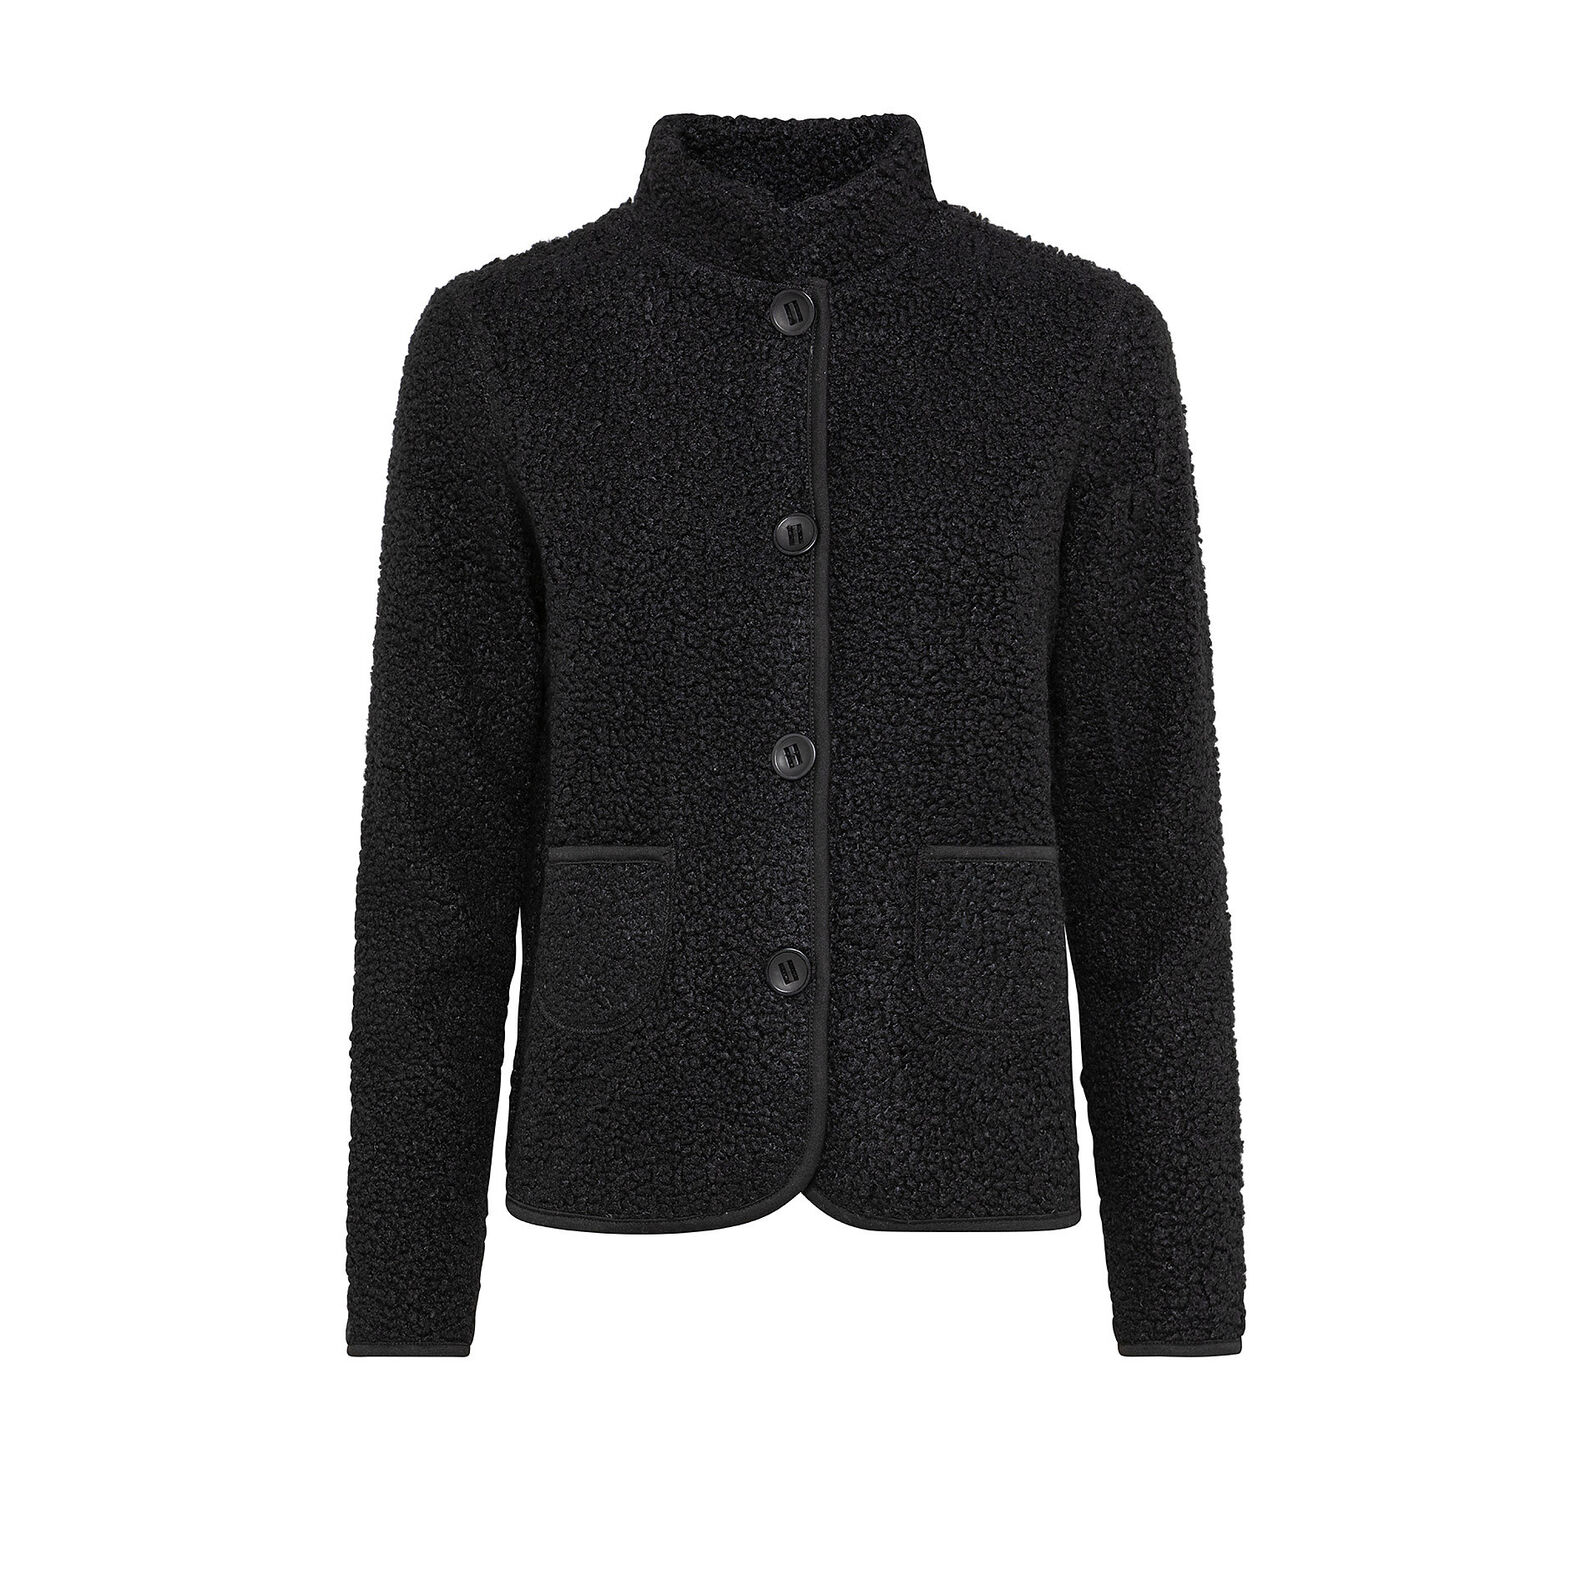 Teddy jacket with buttons